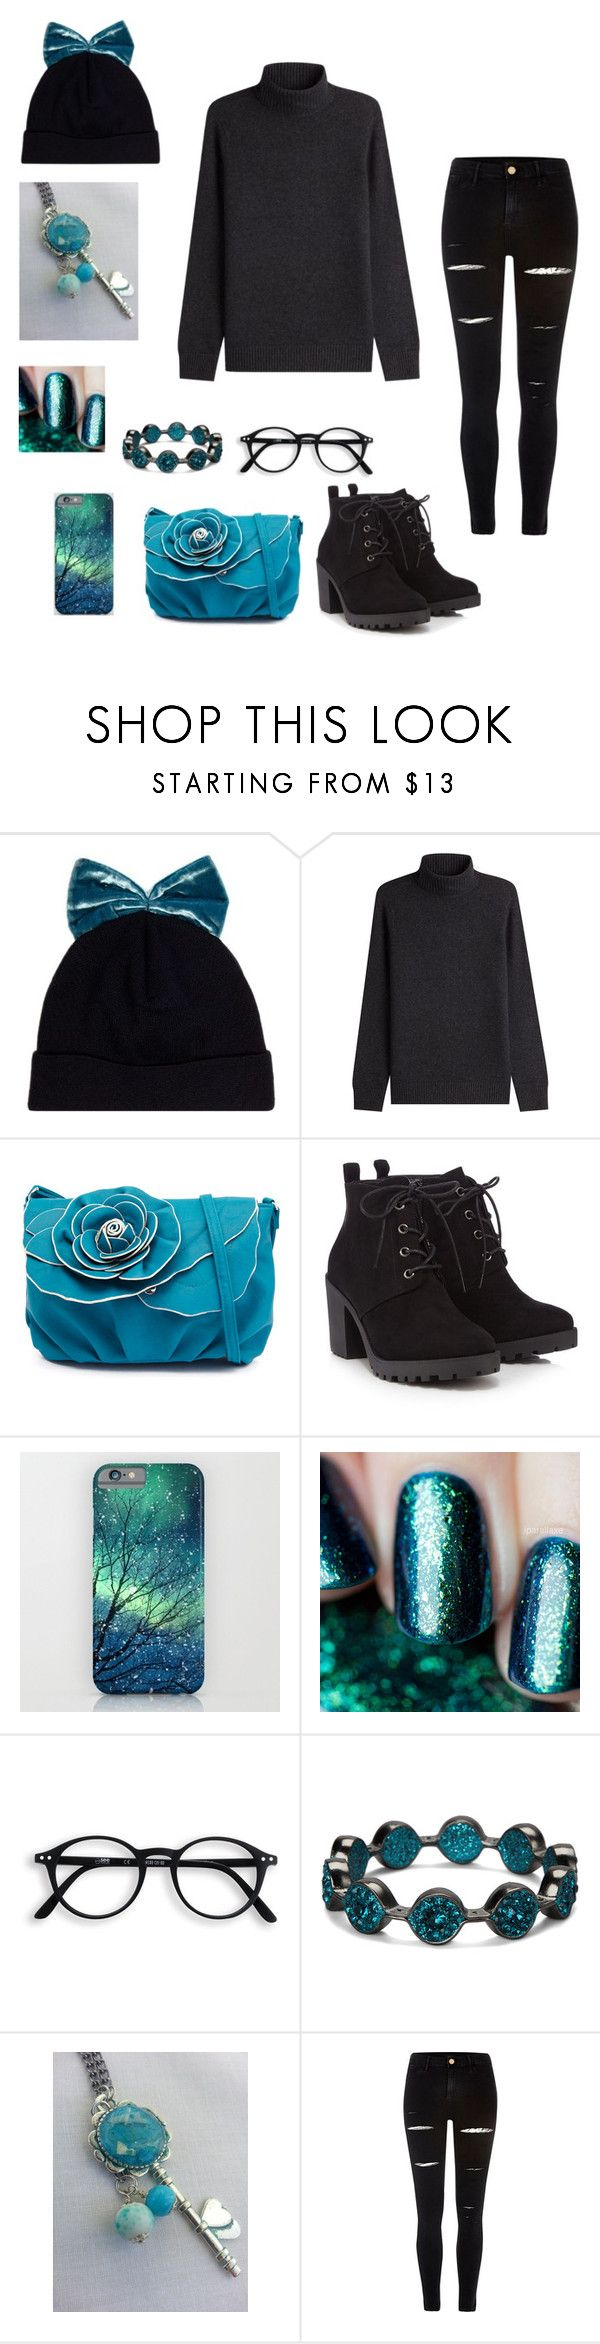 """""""Black and Teal"""" by alexthenerd ❤ liked on Polyvore featuring Federica Moretti, Vince, Red Herring, Gaia, SAACHI Style, River Island and black"""